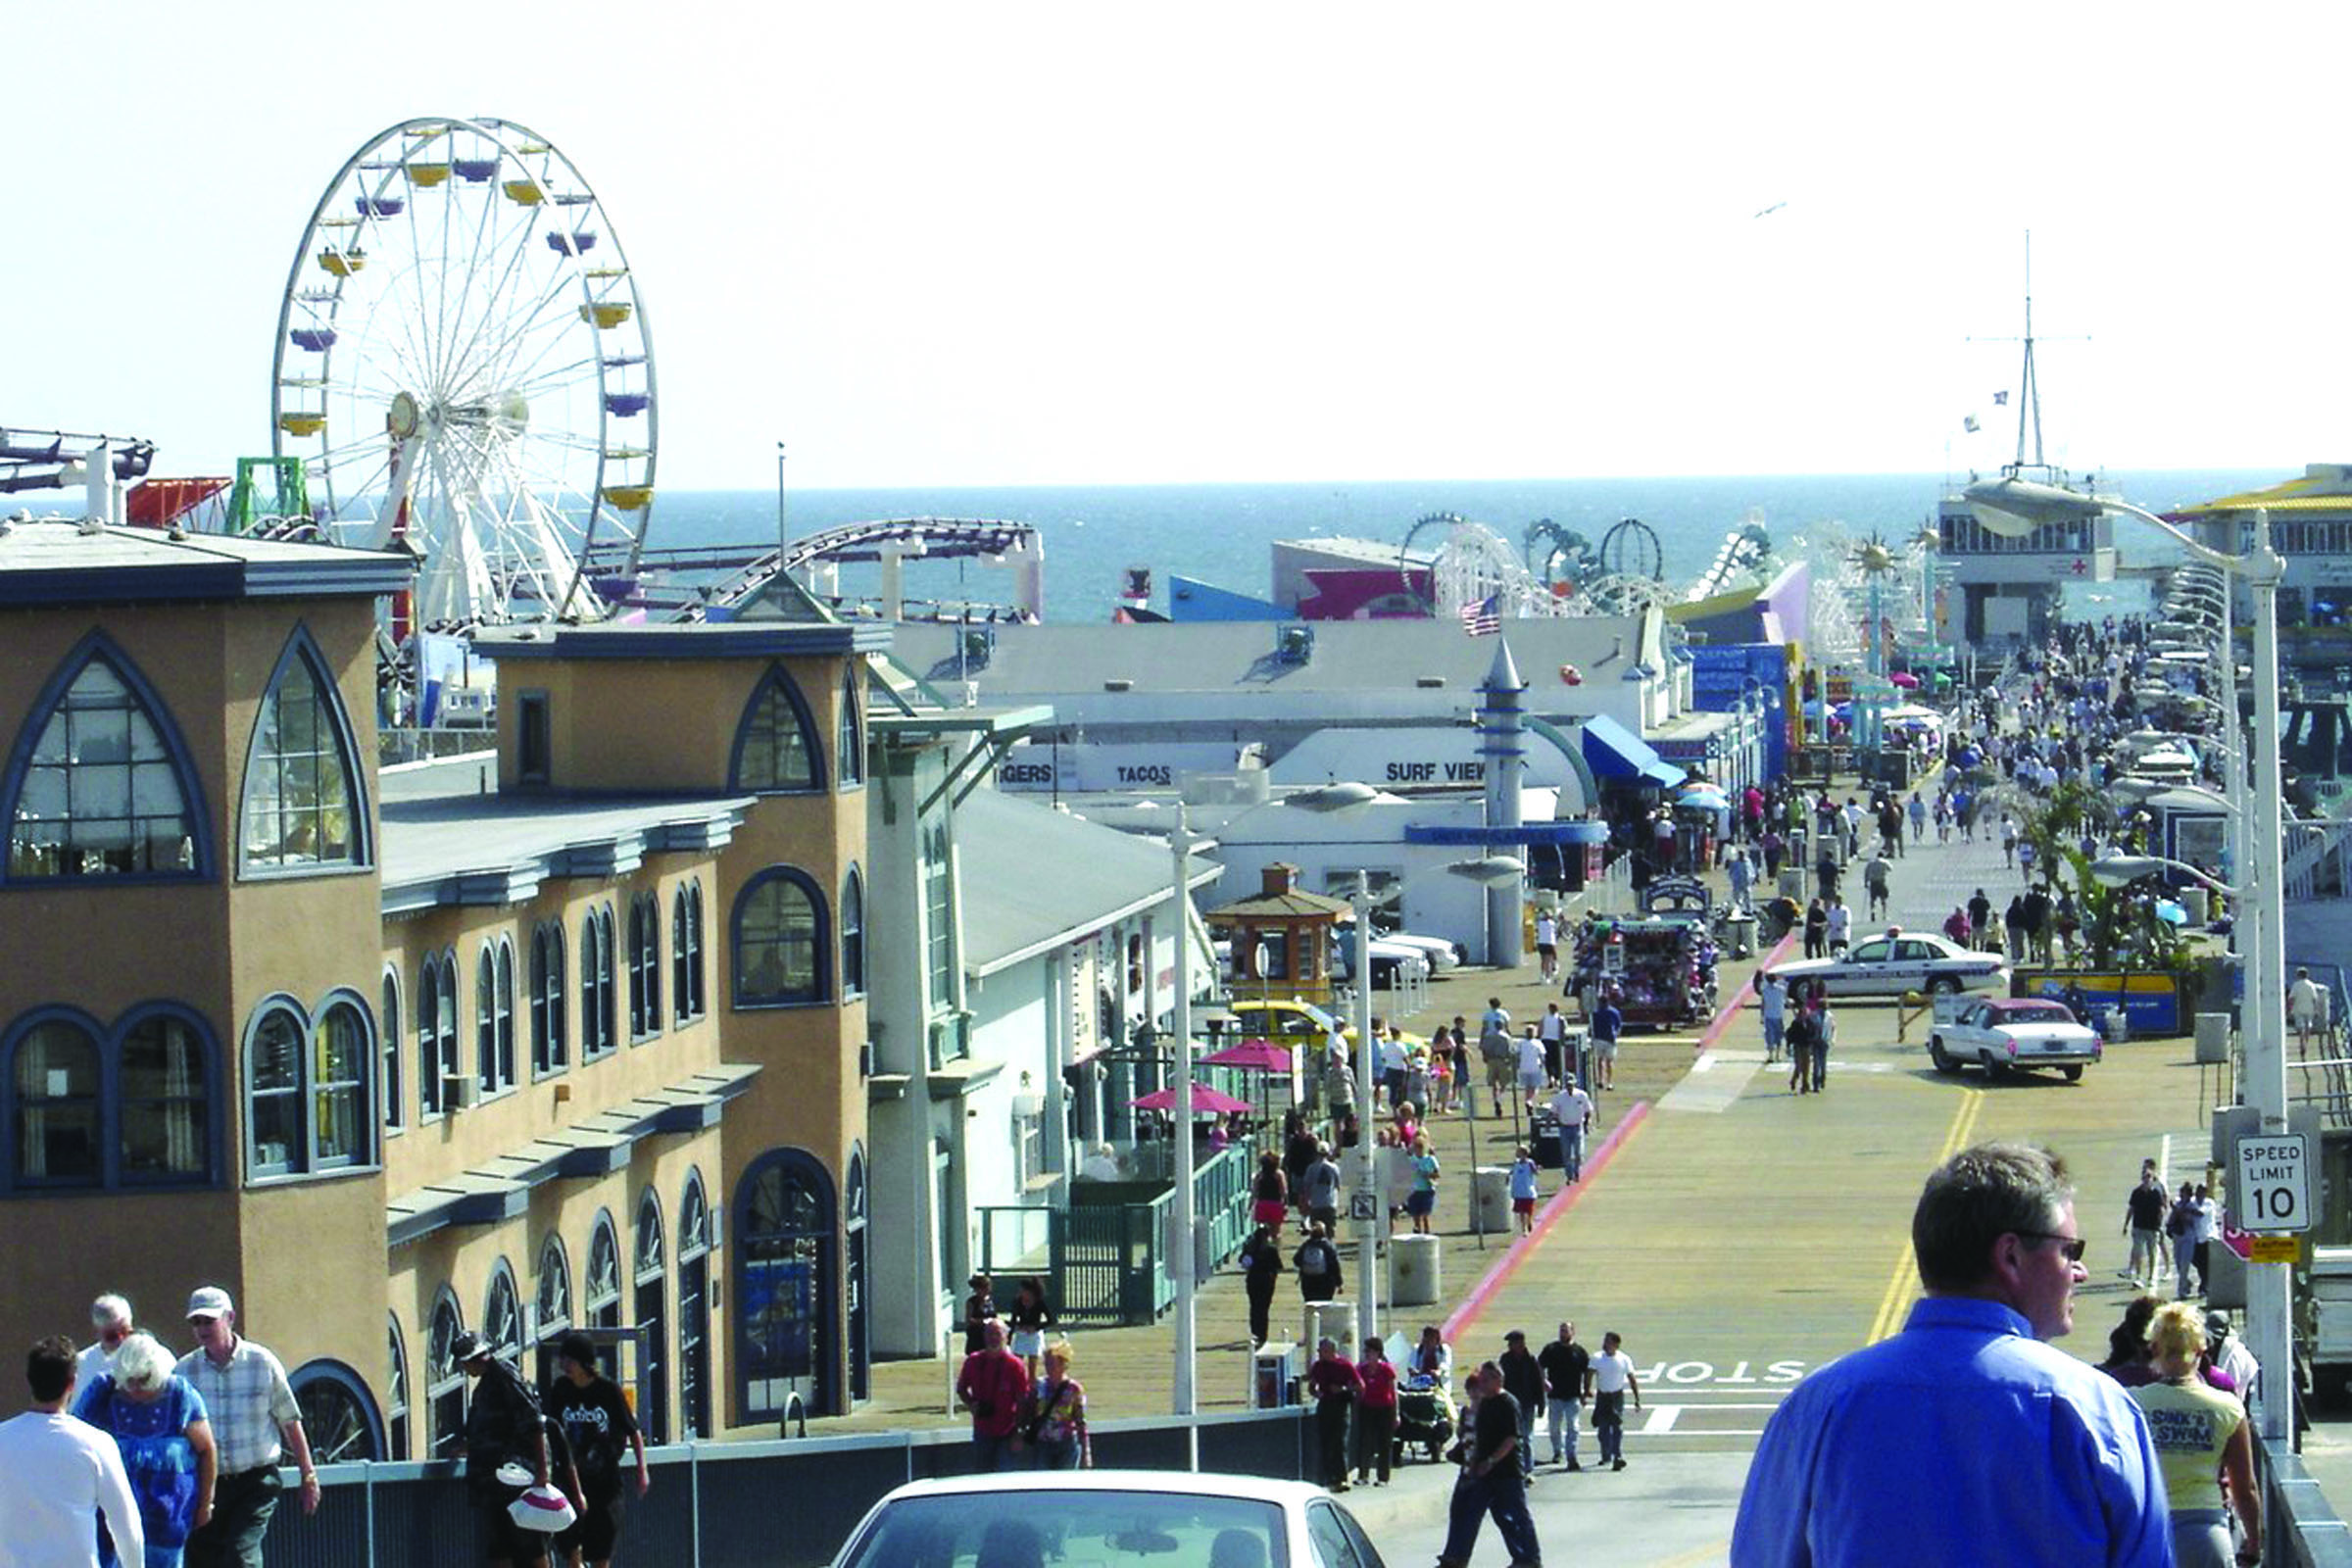 The restored Santa Monica Pier is an iconic symbol of the city and a major tourist attraction.